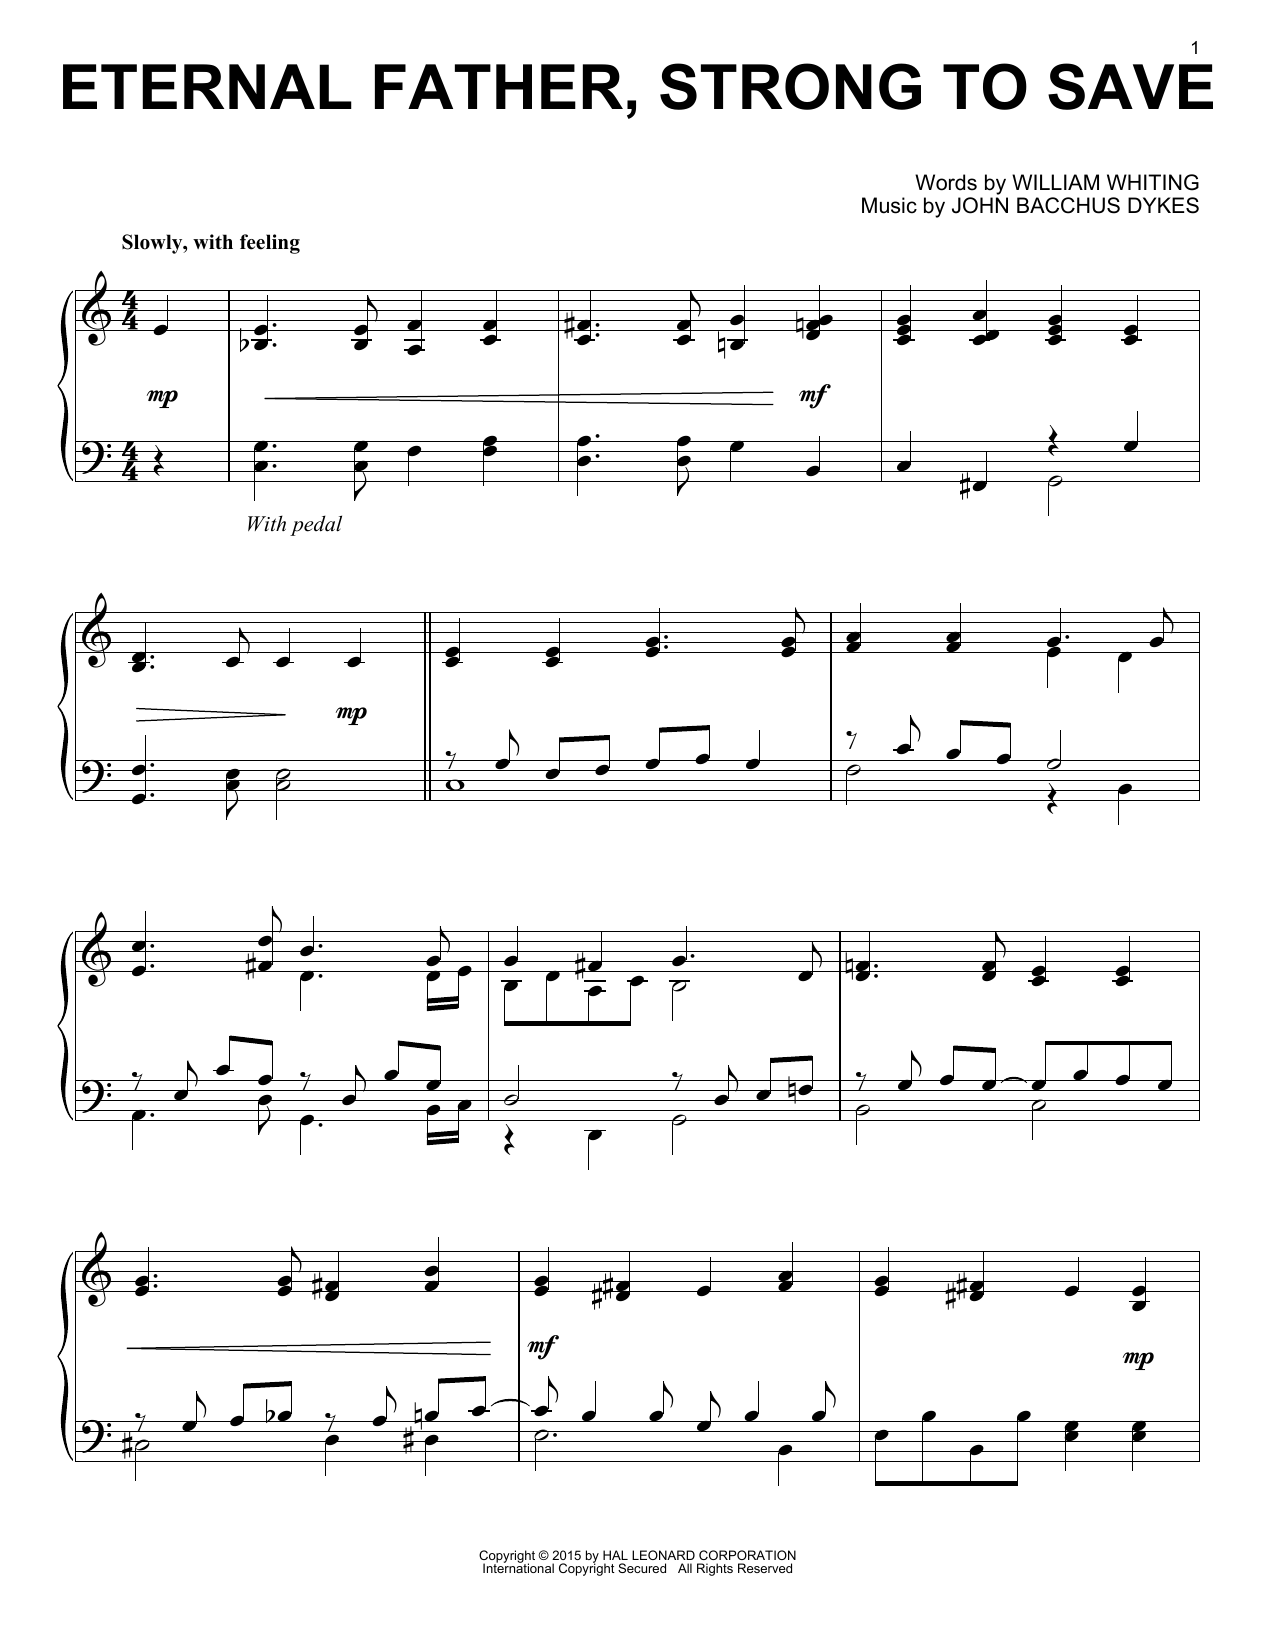 Download John B. Dykes 'Eternal Father, Strong To Save' Digital Sheet Music Notes & Chords and start playing in minutes